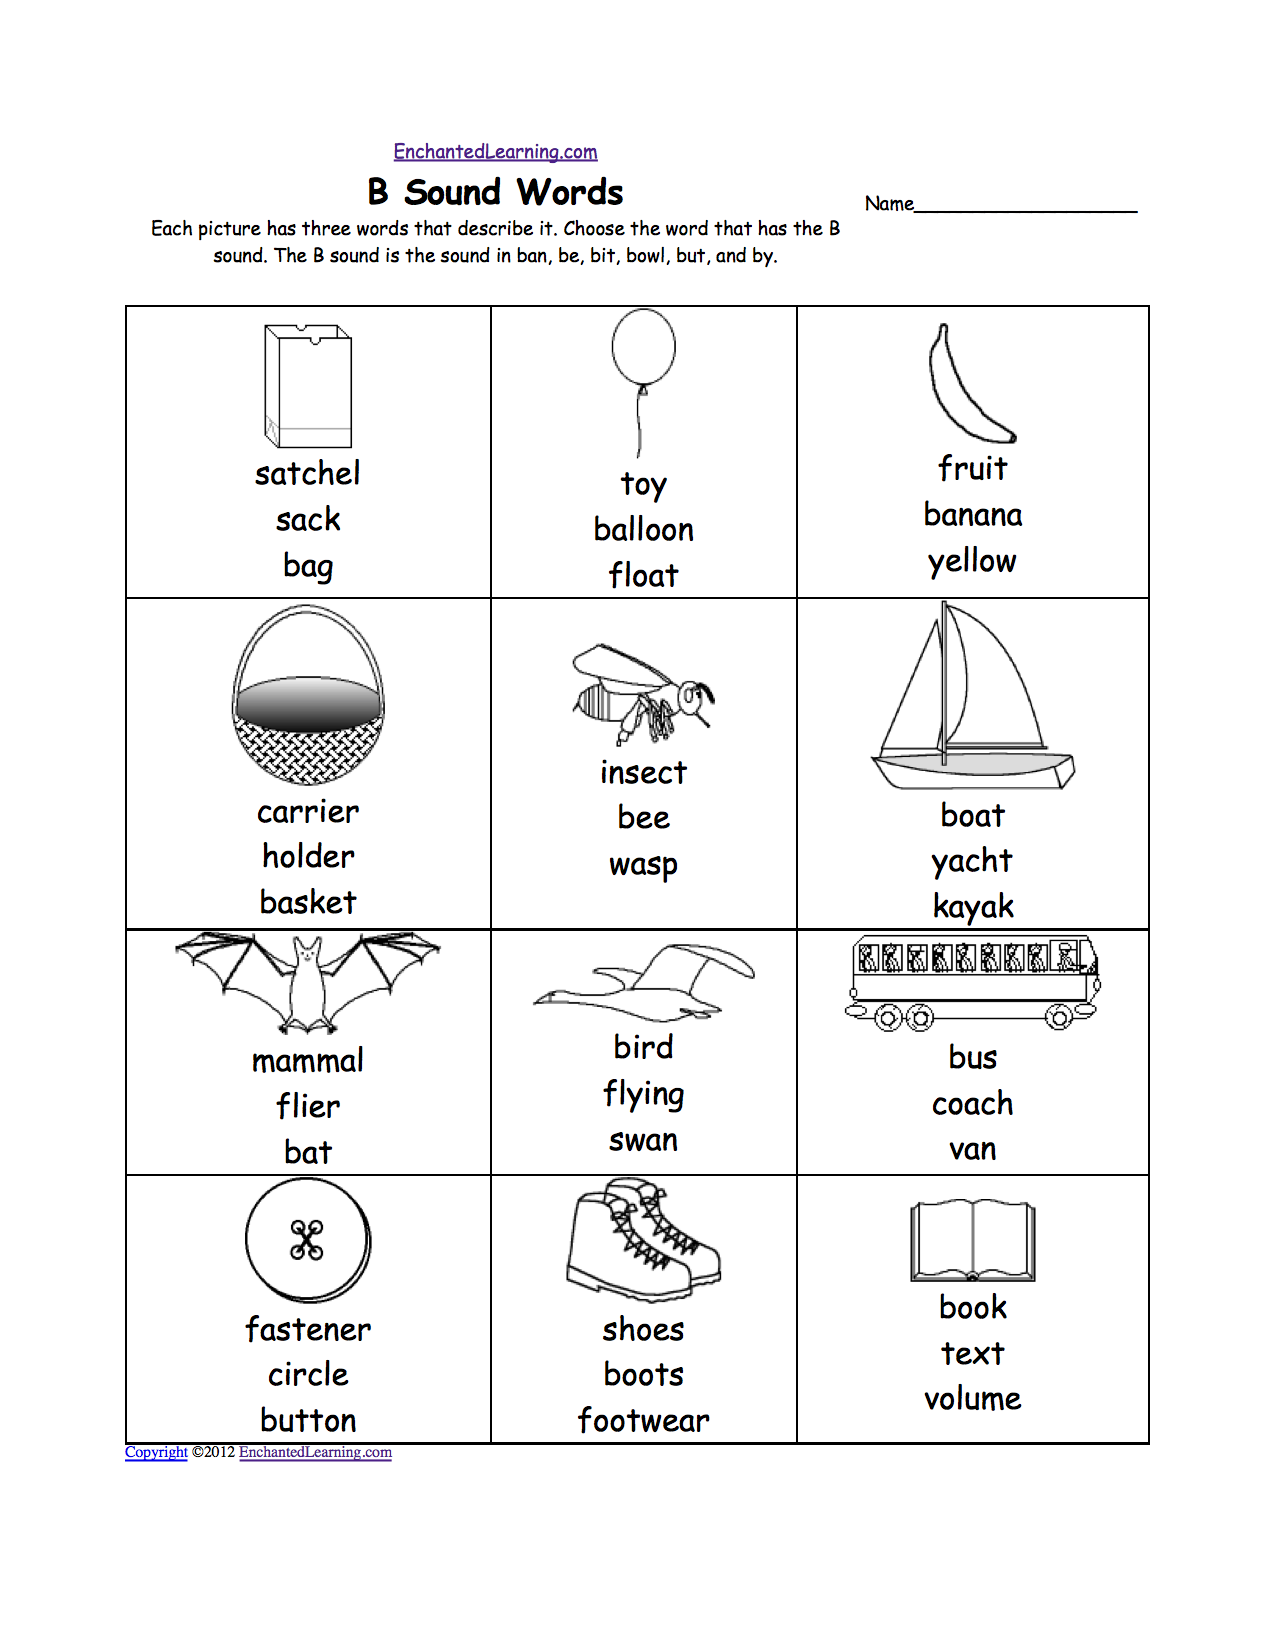 Aldiablosus  Marvelous Phonics Worksheets Multiple Choice Worksheets To Print  With Goodlooking Quotbquot Sound Phonics Worksheet Multiple Choice Each Picture Has Three Words That Describe It Choose The Word That Has A Quotbquot Sound The Quotbquot Sound Is The Sound  With Nice Exponent Worksheets Algebra  Also Aphasia Worksheets In Addition Naming Worksheet  Naming Ionic Compounds And Add Subtract Worksheets As Well As Multiplying Fractions By Whole Numbers Worksheet Additionally Worksheet Numbers   From Enchantedlearningcom With Aldiablosus  Goodlooking Phonics Worksheets Multiple Choice Worksheets To Print  With Nice Quotbquot Sound Phonics Worksheet Multiple Choice Each Picture Has Three Words That Describe It Choose The Word That Has A Quotbquot Sound The Quotbquot Sound Is The Sound  And Marvelous Exponent Worksheets Algebra  Also Aphasia Worksheets In Addition Naming Worksheet  Naming Ionic Compounds From Enchantedlearningcom